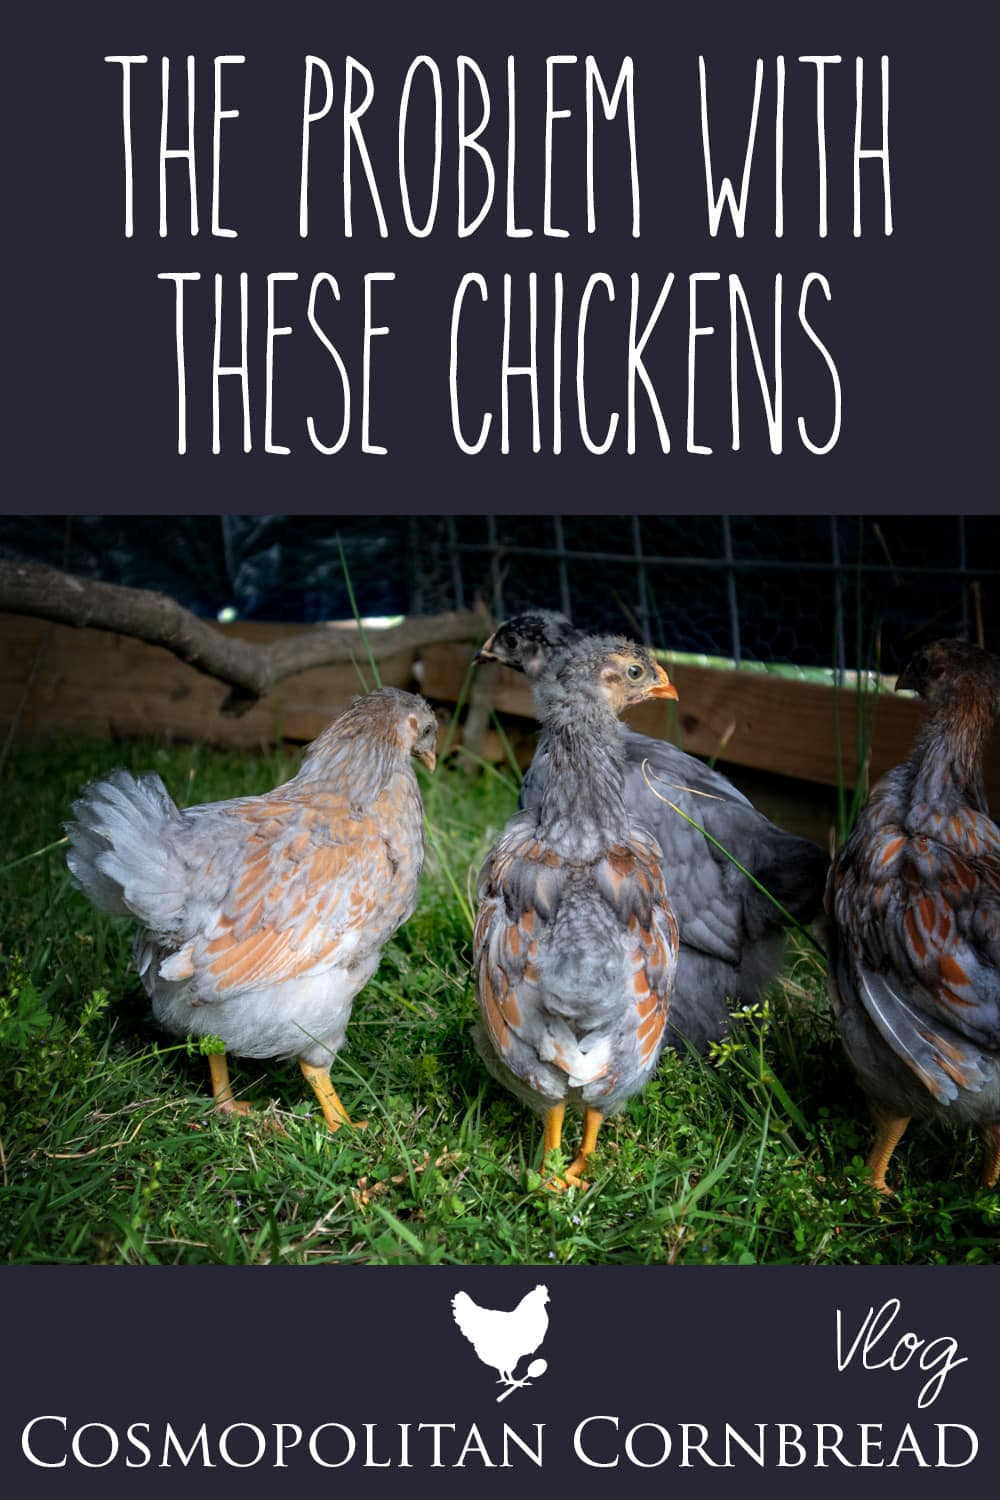 We are getting ready for another batch of chickens to come this week, so it was time to move the pullets on out! Also....#ChickenProblems :)